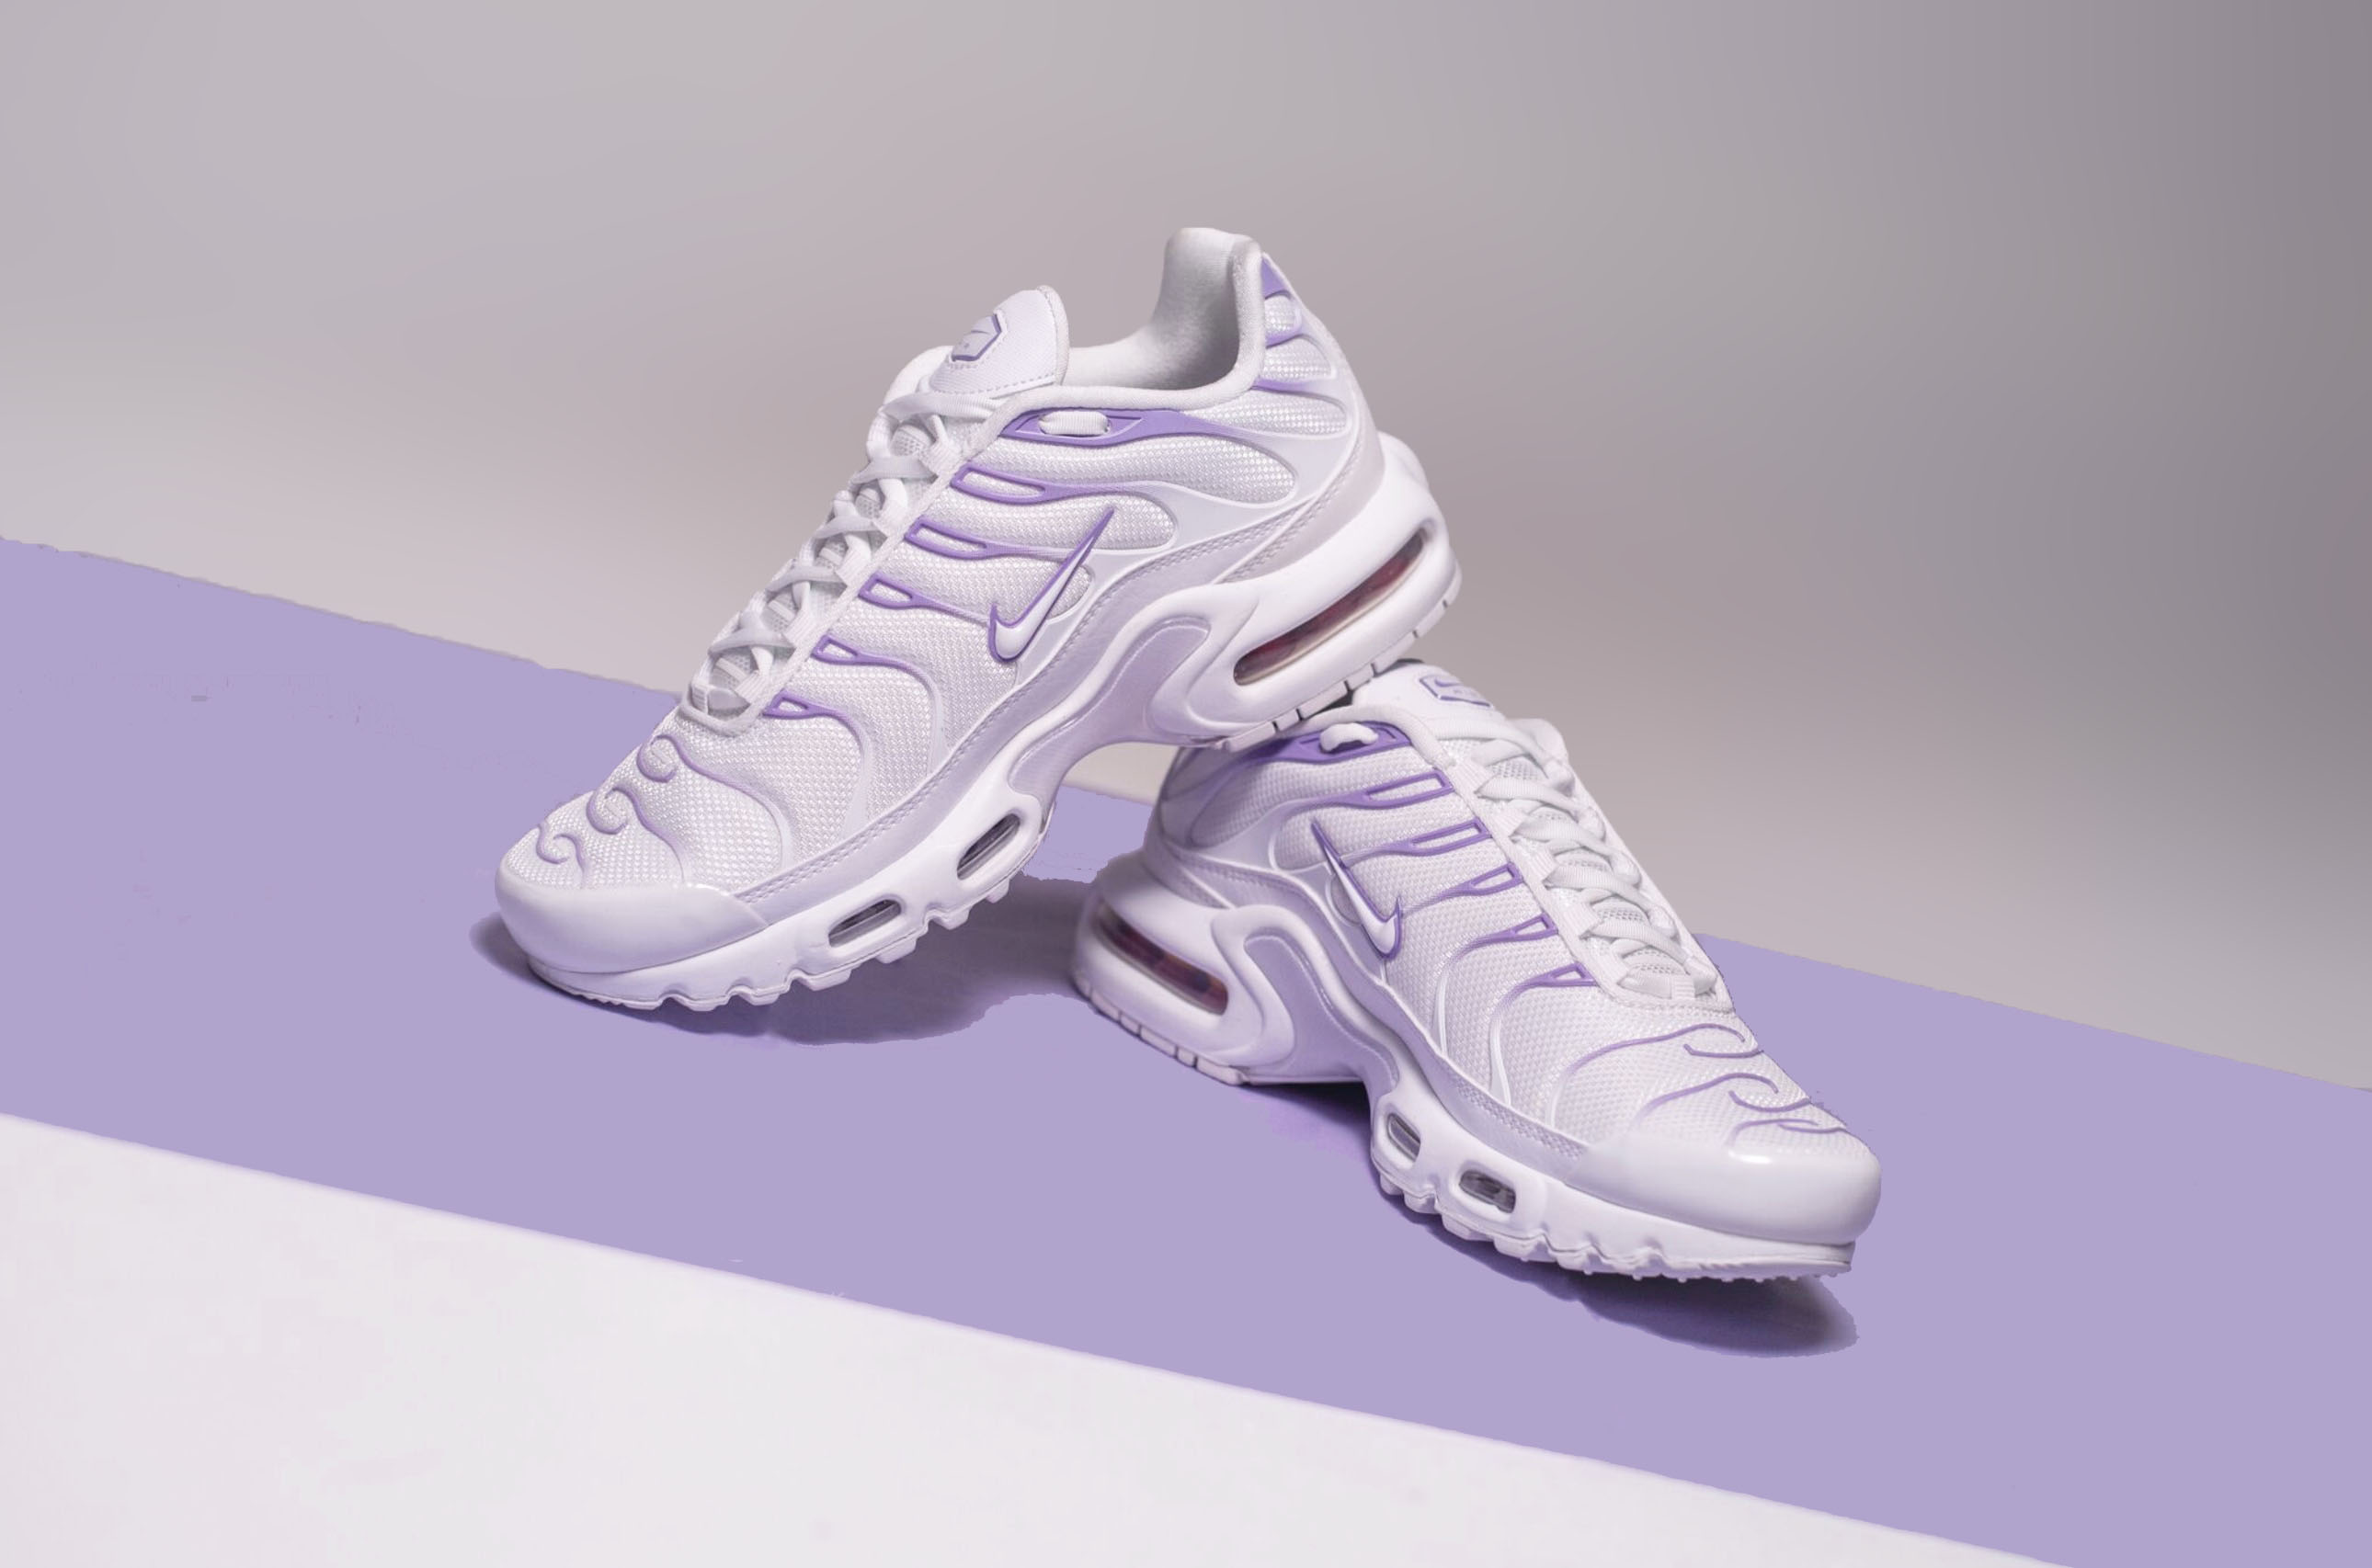 new concept 91dac c1508 An Exclusive Closer Look At The Nike Air Max Plus In Space ...